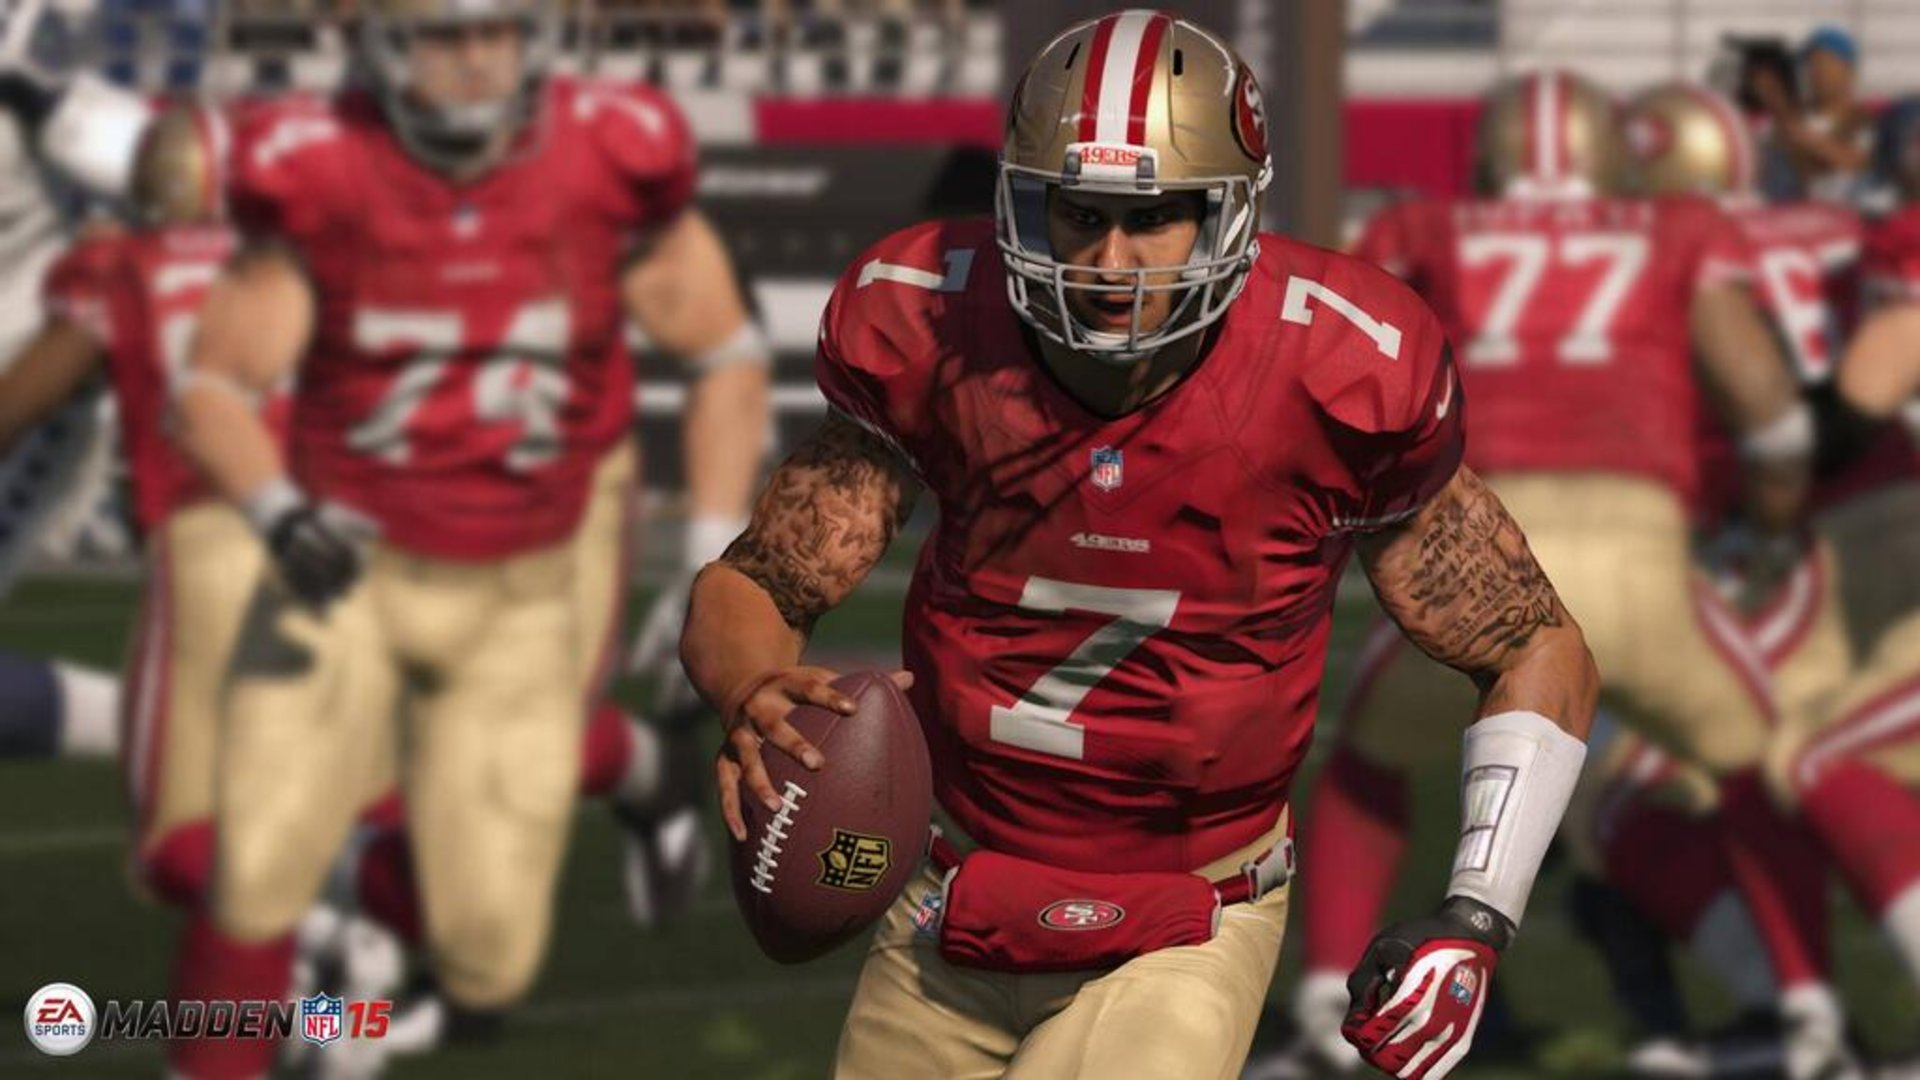 A shot from Madden NFL 15